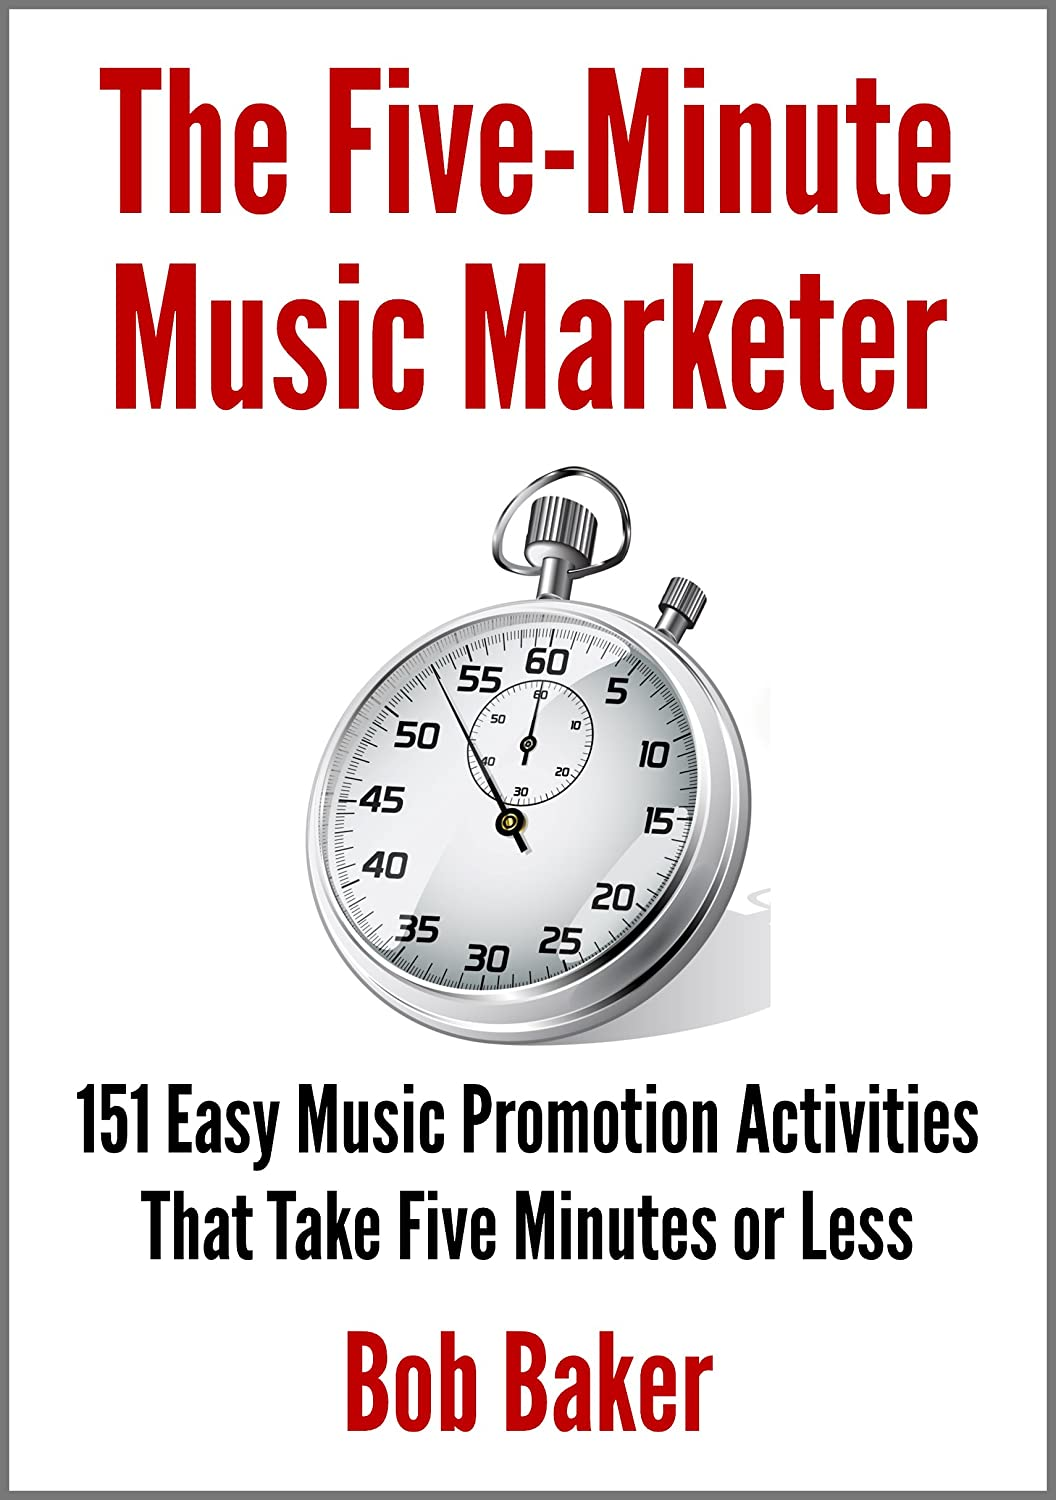 Five-Minute Music Marketer Book by Bob Baker